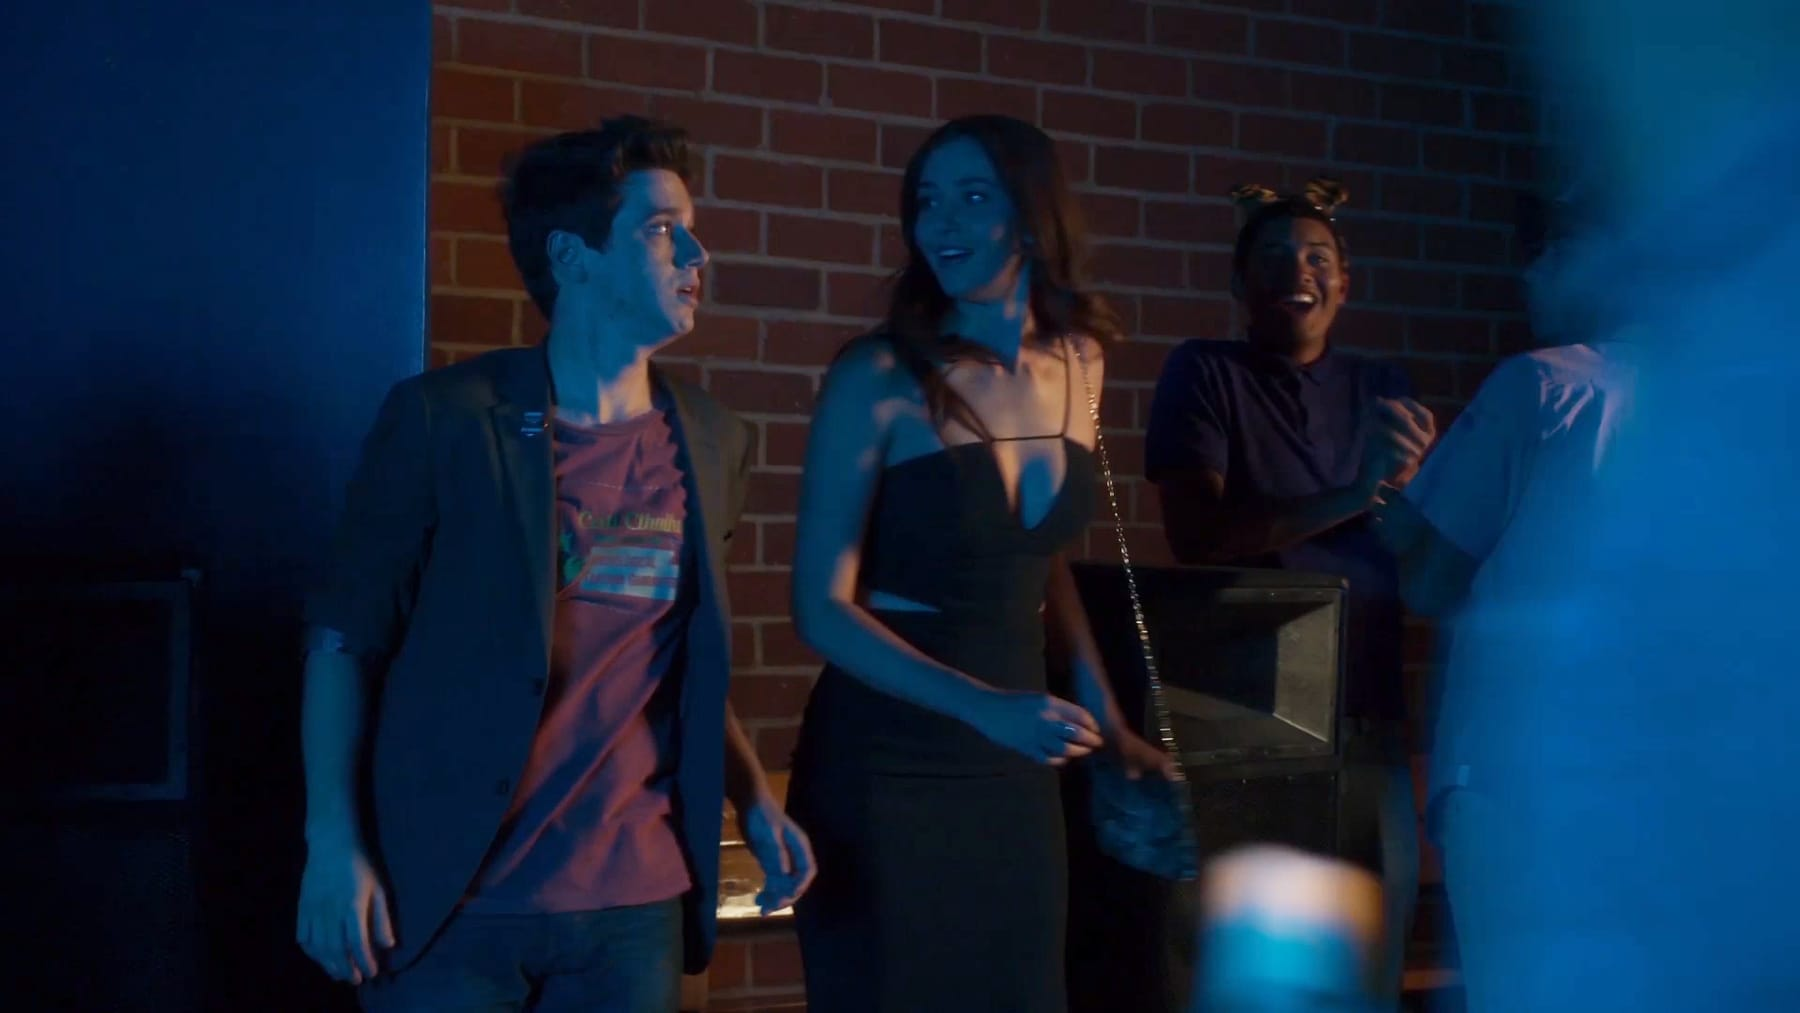 All Night marks the second series from AwesomenessTV to be available exclusively on Hulu